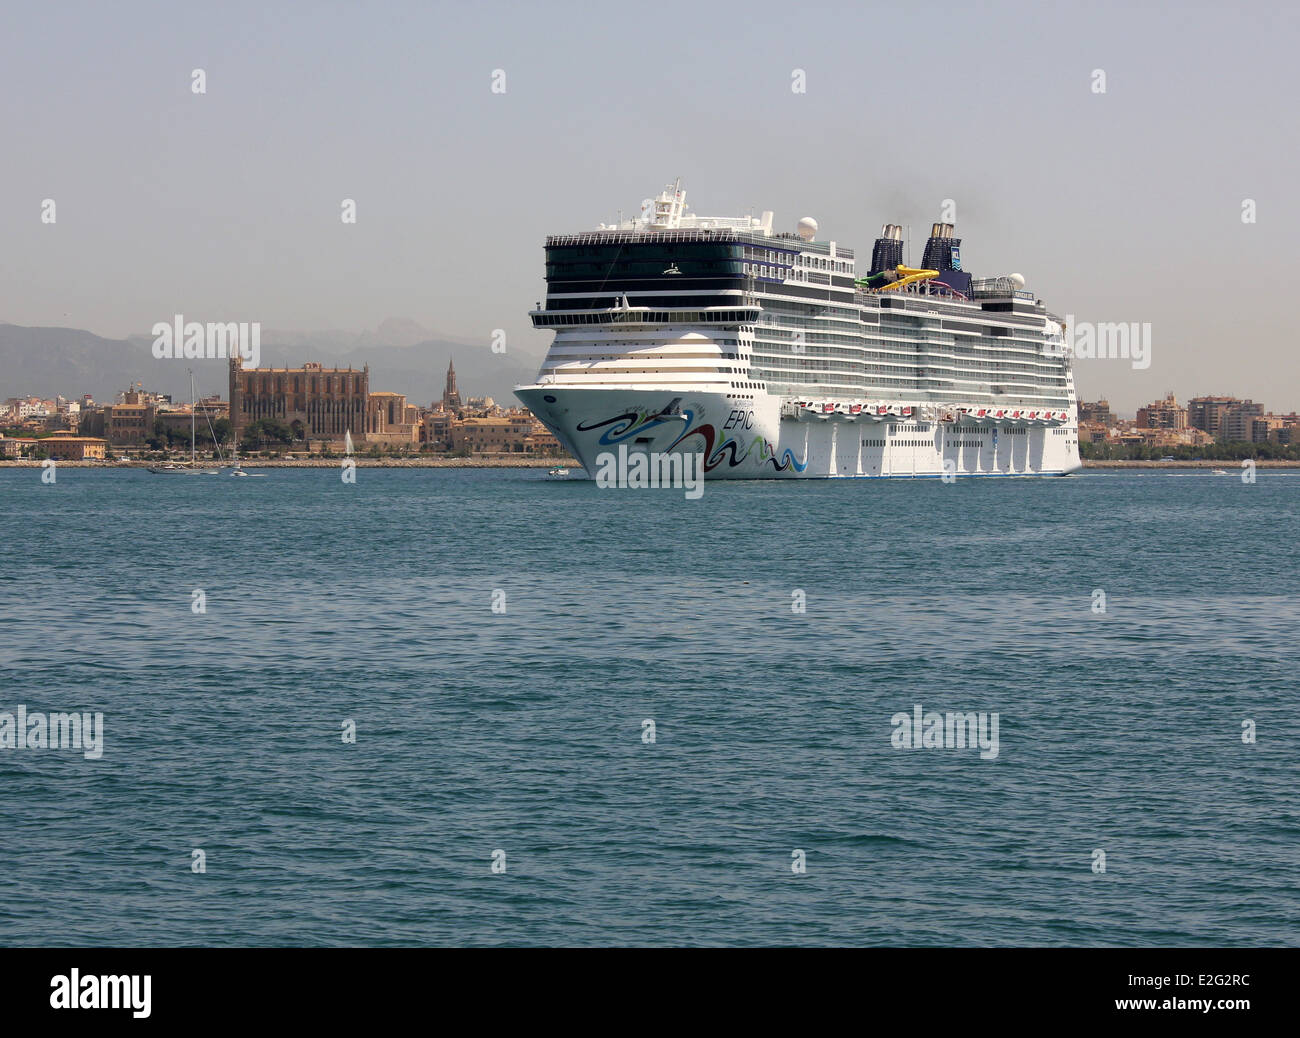 "Norwegian Cruise Line (NCL) Cruise ship ""Norwegian Epic"" (325 mtrs) - entering port past Palma historic Gothic Cathedral - Stock Image"